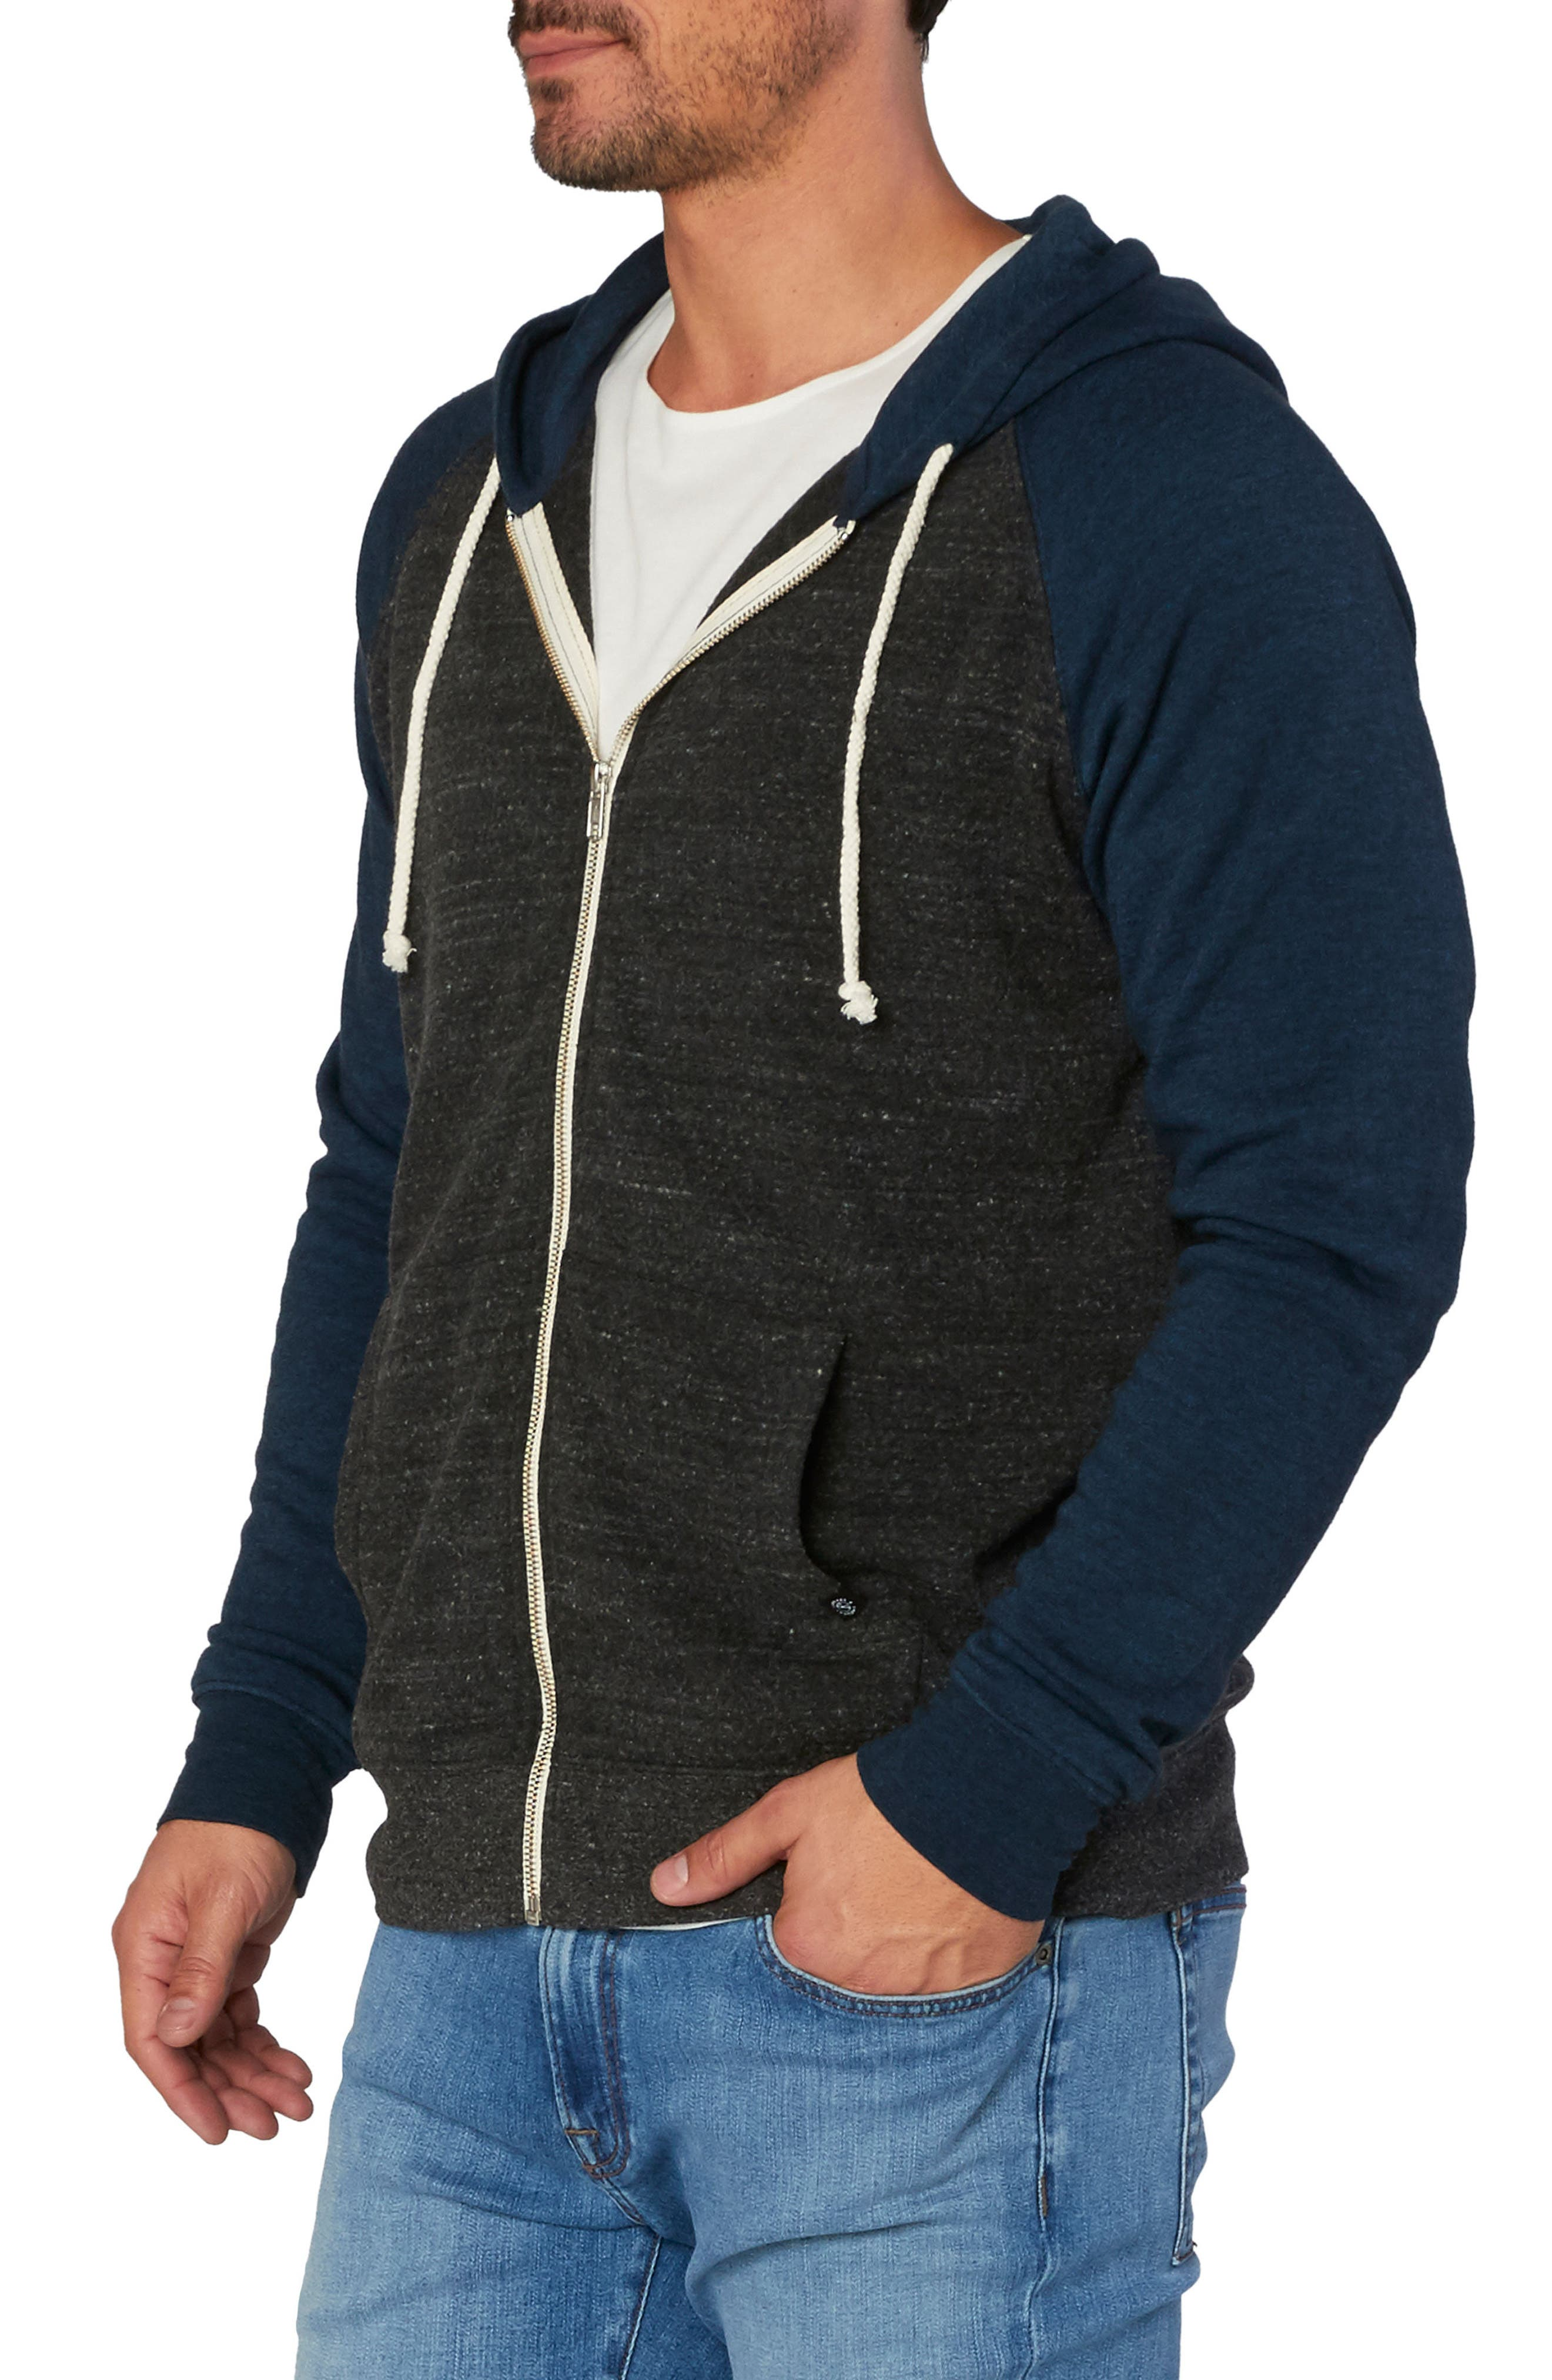 Threads for Thought Raglan Hoodie,                             Alternate thumbnail 3, color,                             001